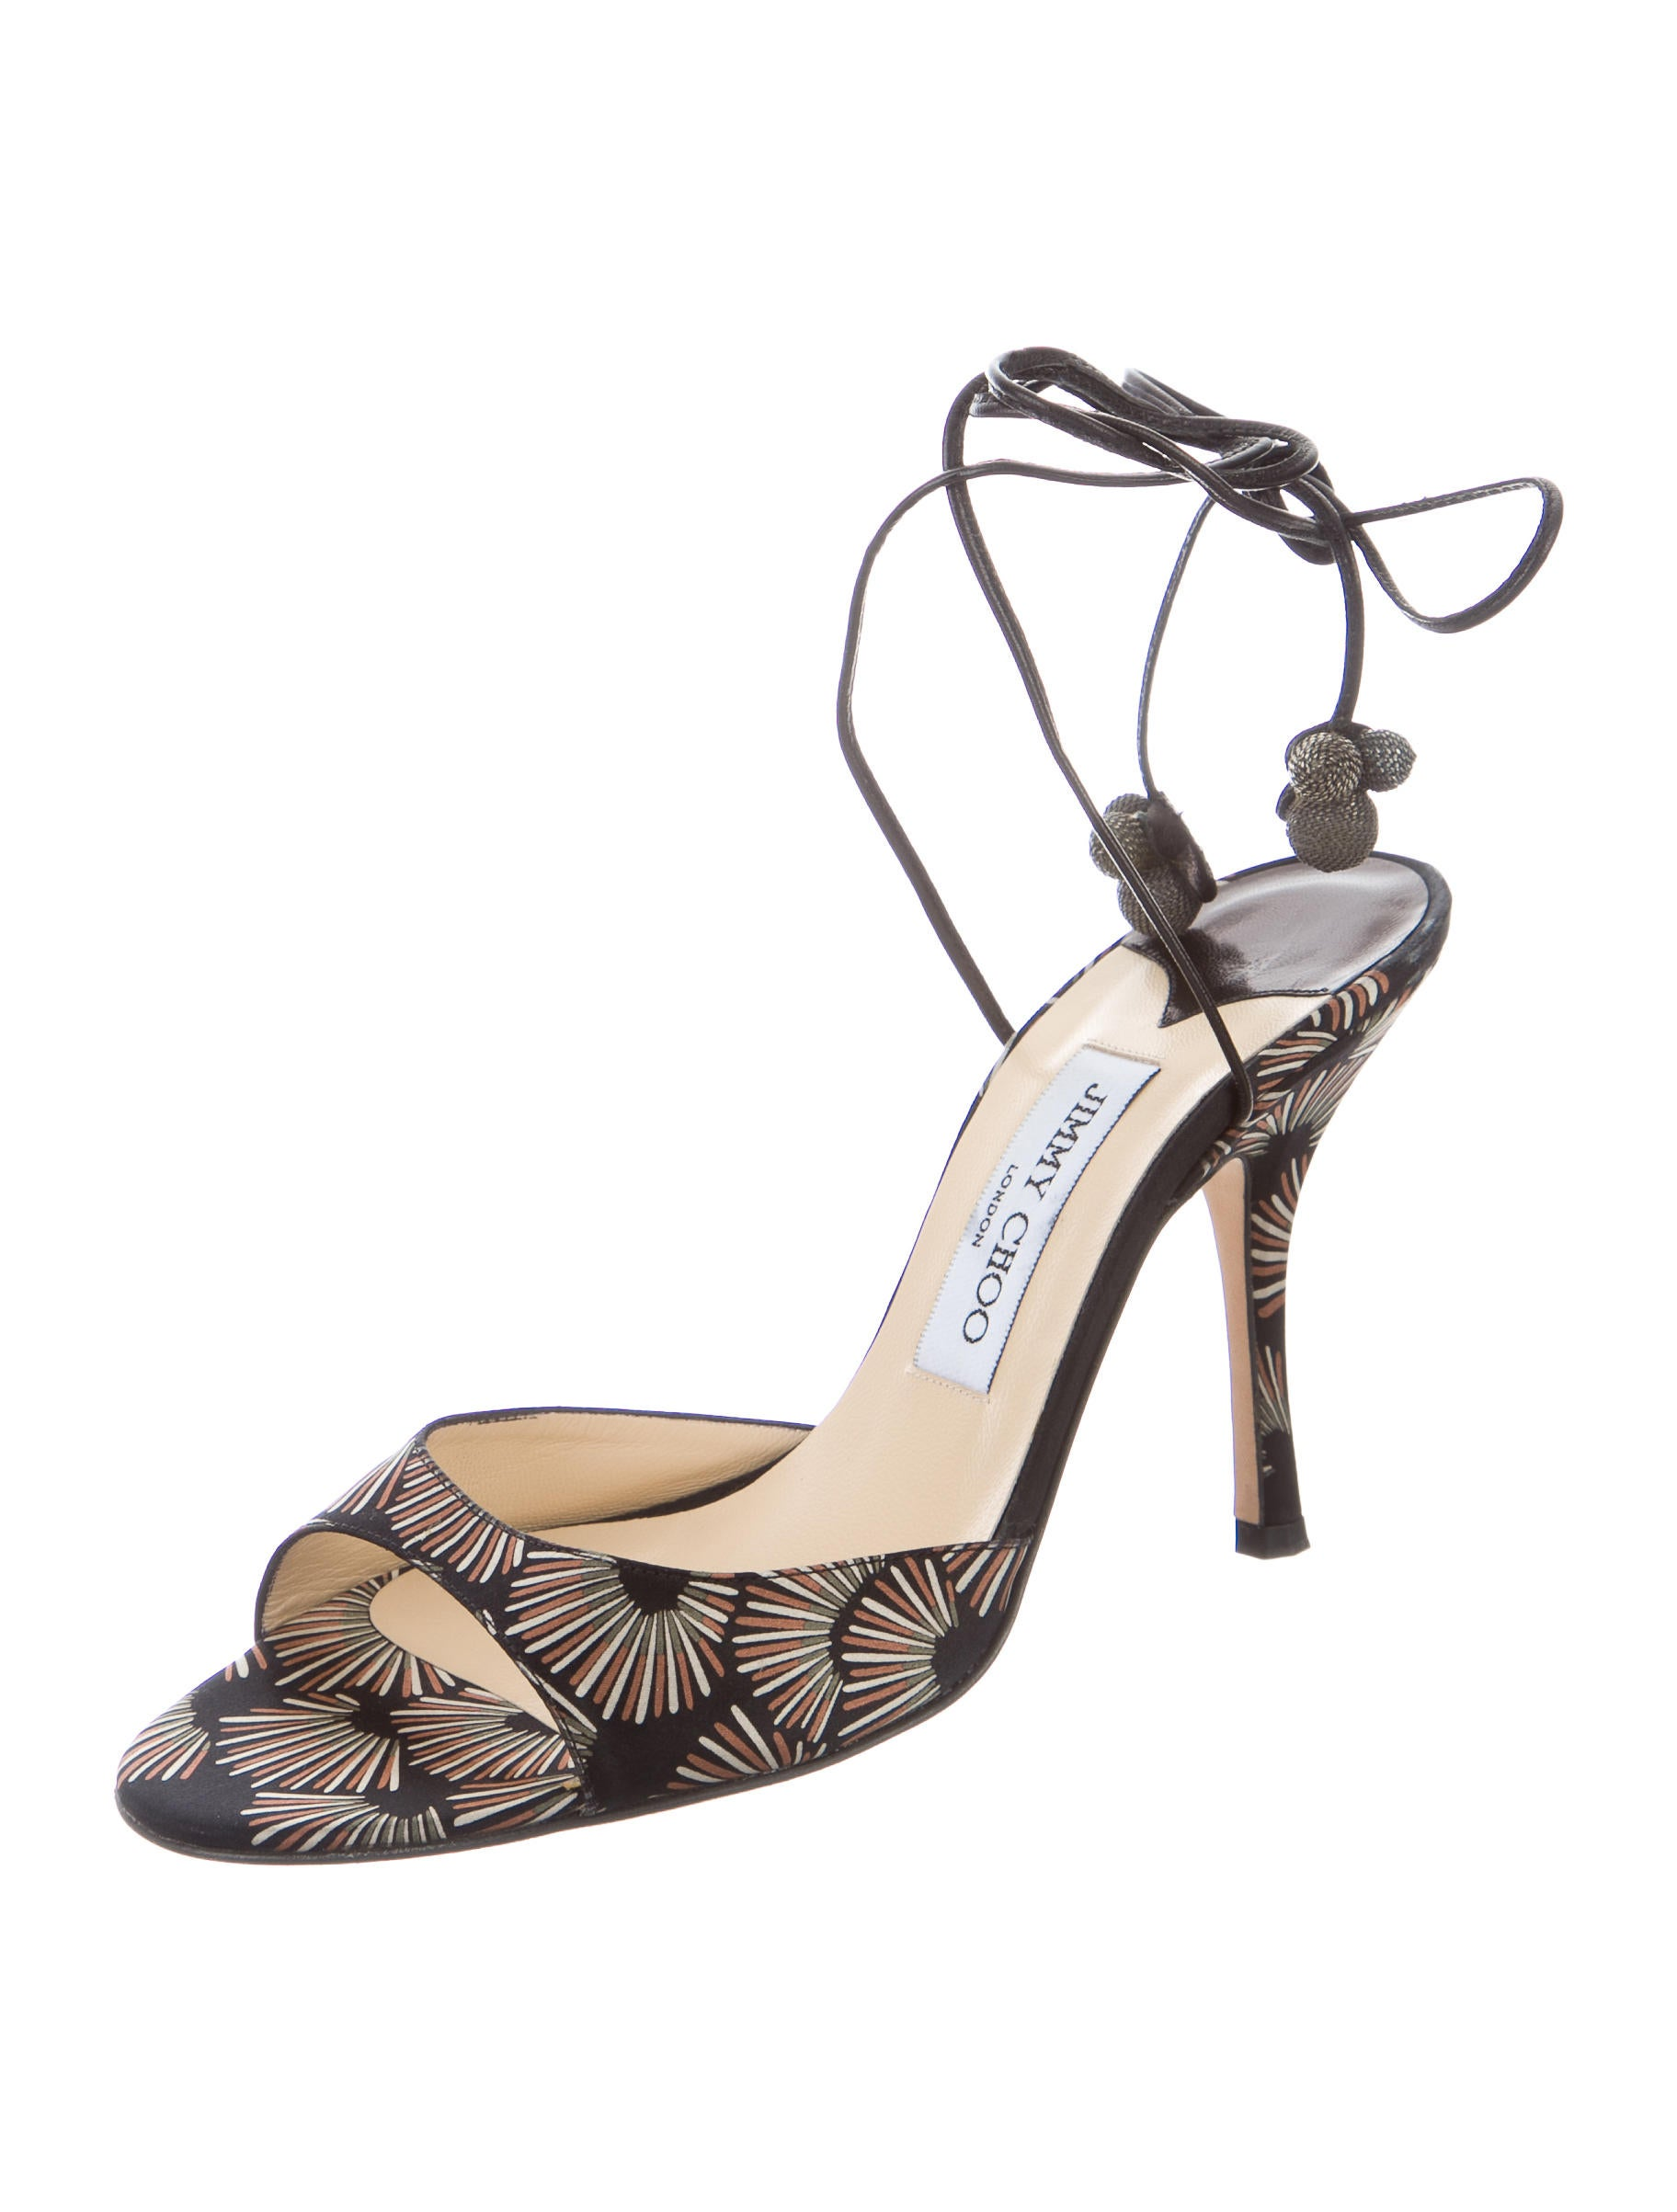 Jimmy Choo Satin Lace-Up Sandals - Shoes - JIM60346 | The ...